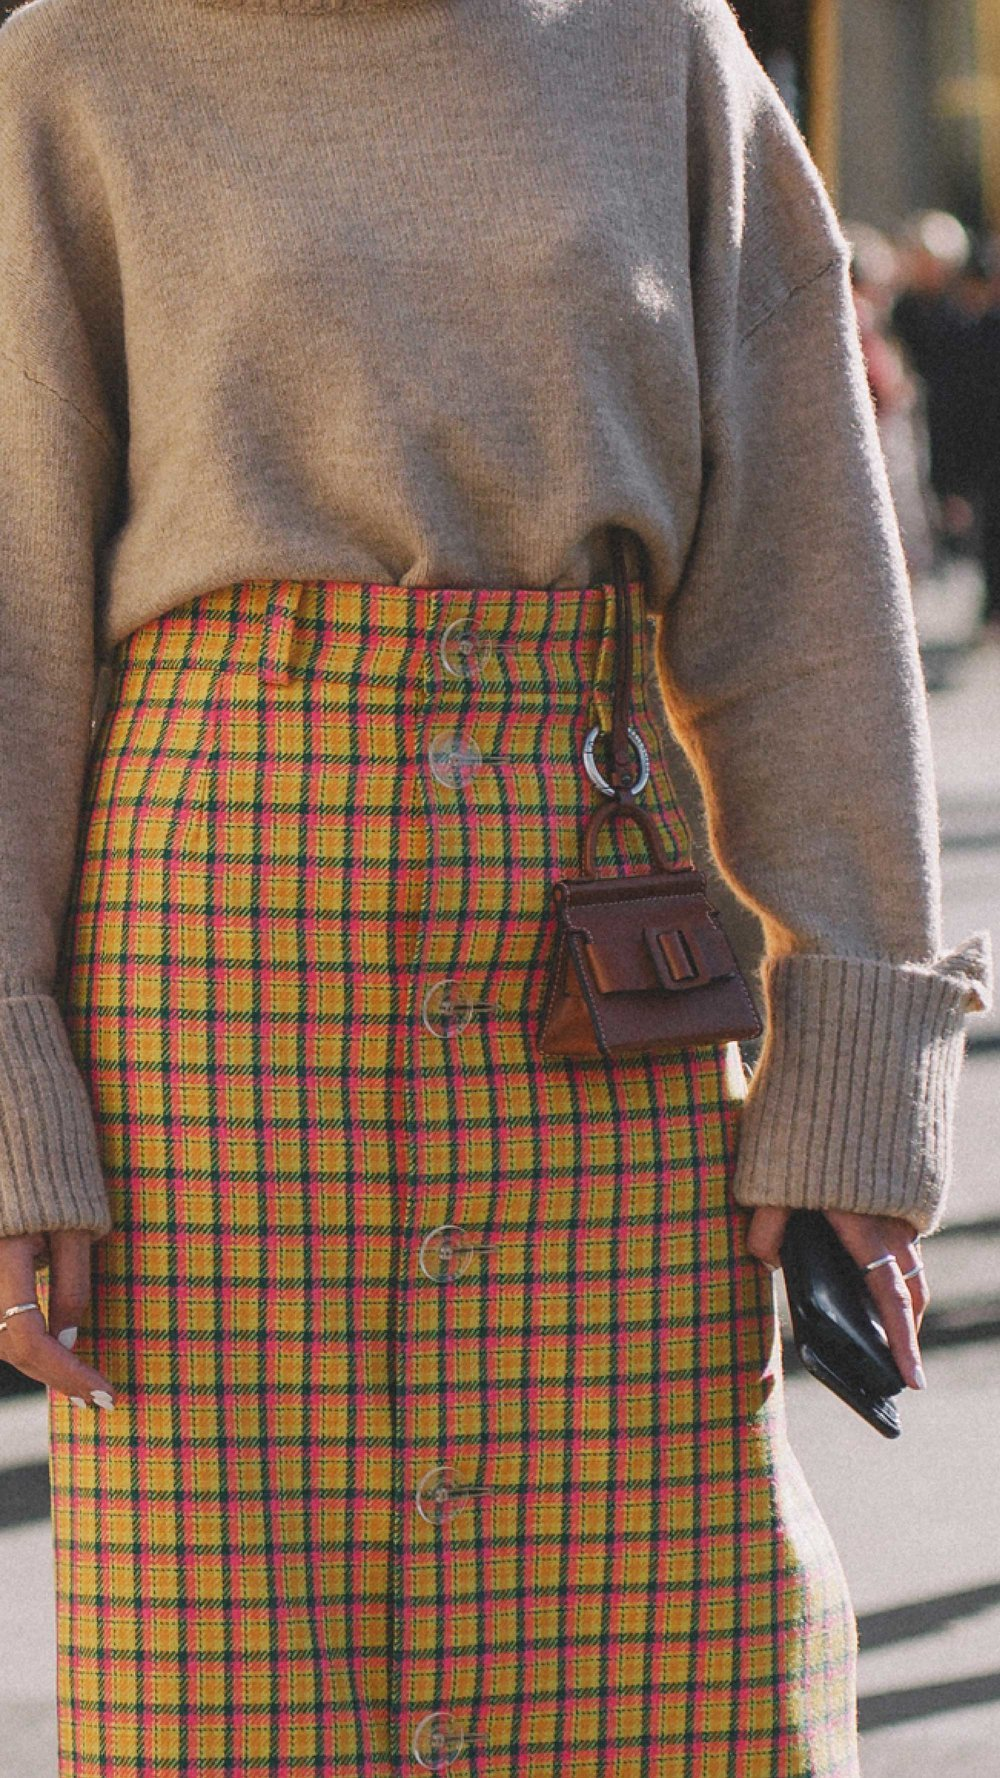 Paris-fashion-street-style-outfits-week-day-three-ss19-38.jpg